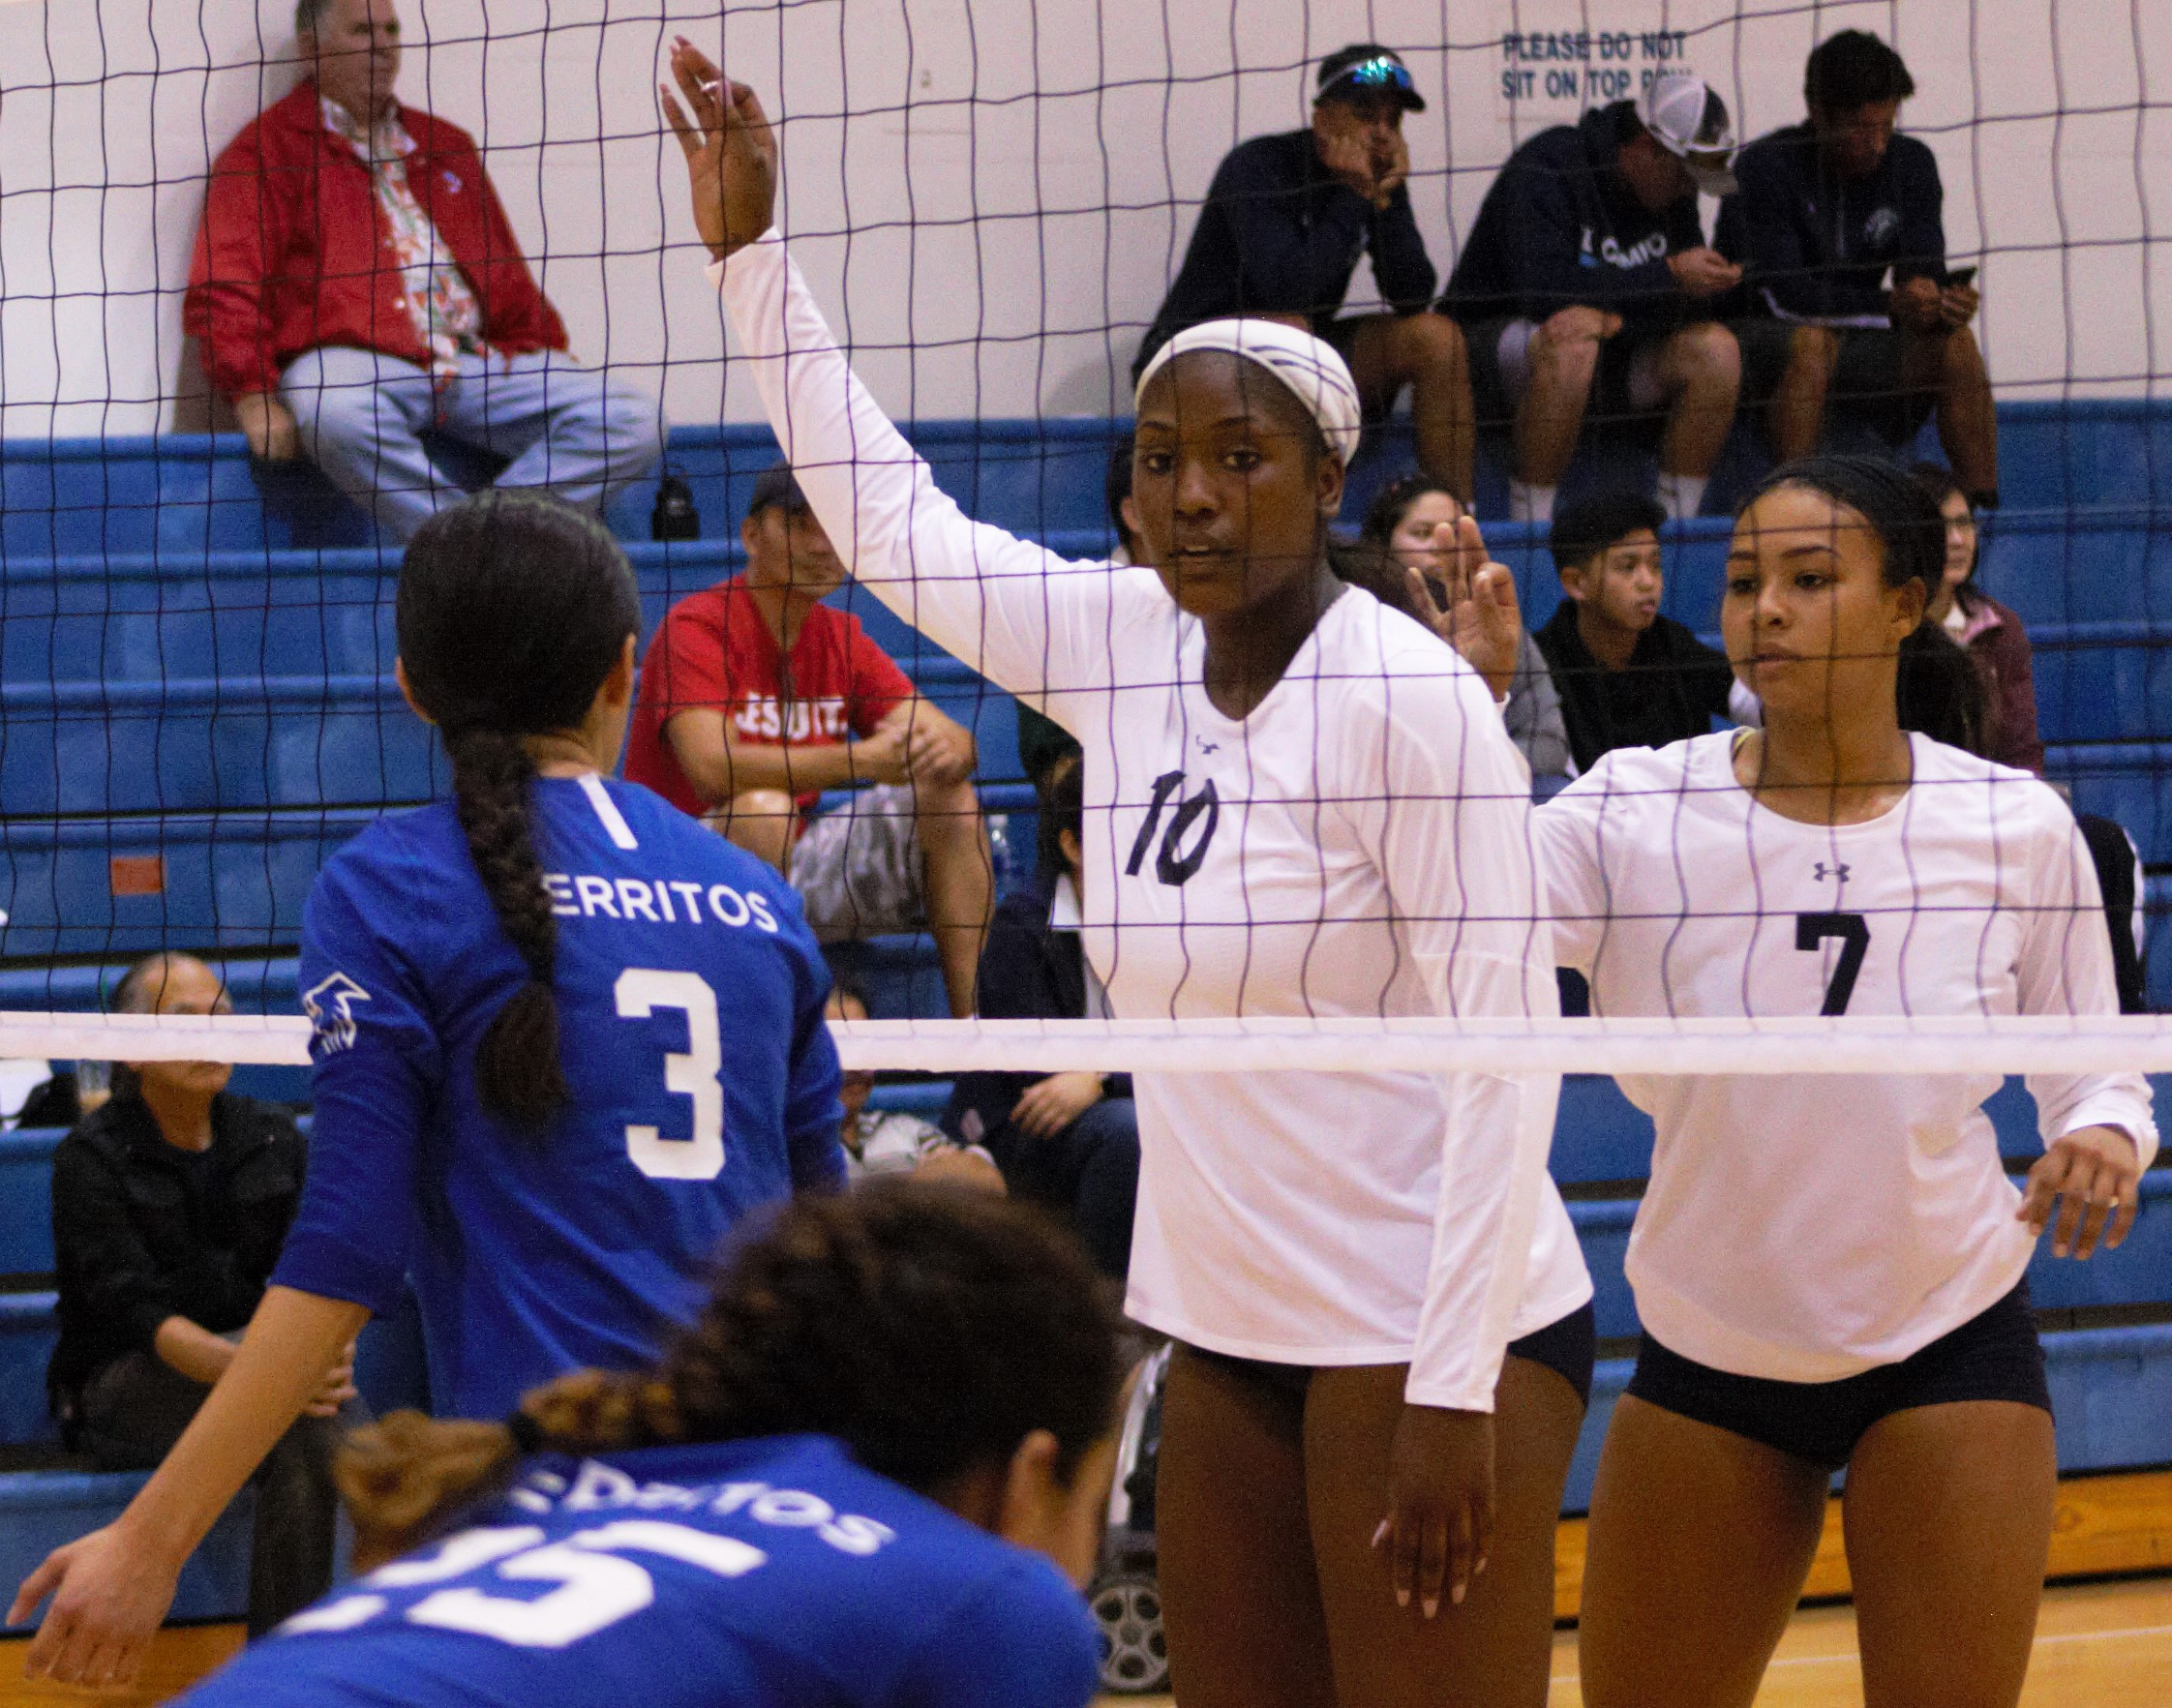 Sophomore leads El Camino women's volleyball team past Cerritos College in sweep